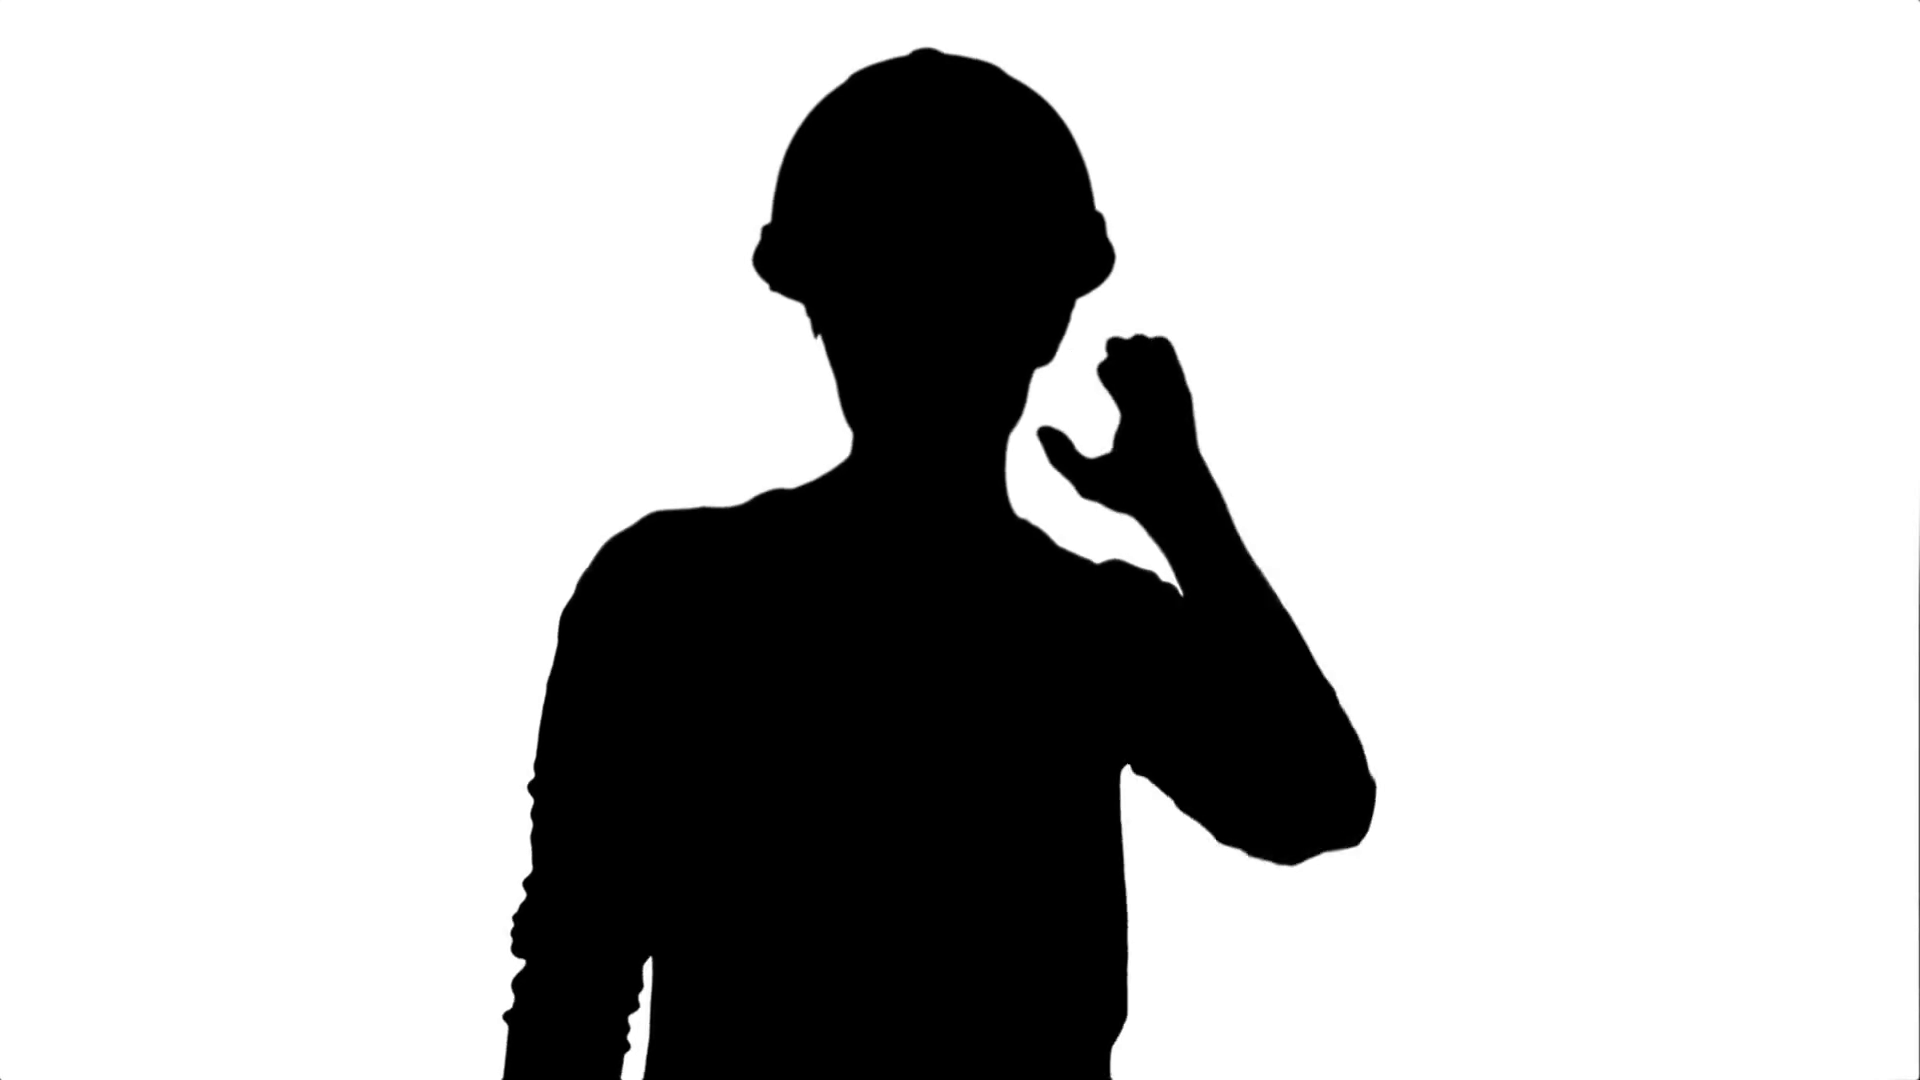 1920x1080 Silhouette Female Construction Worker In Helmet Making Funny